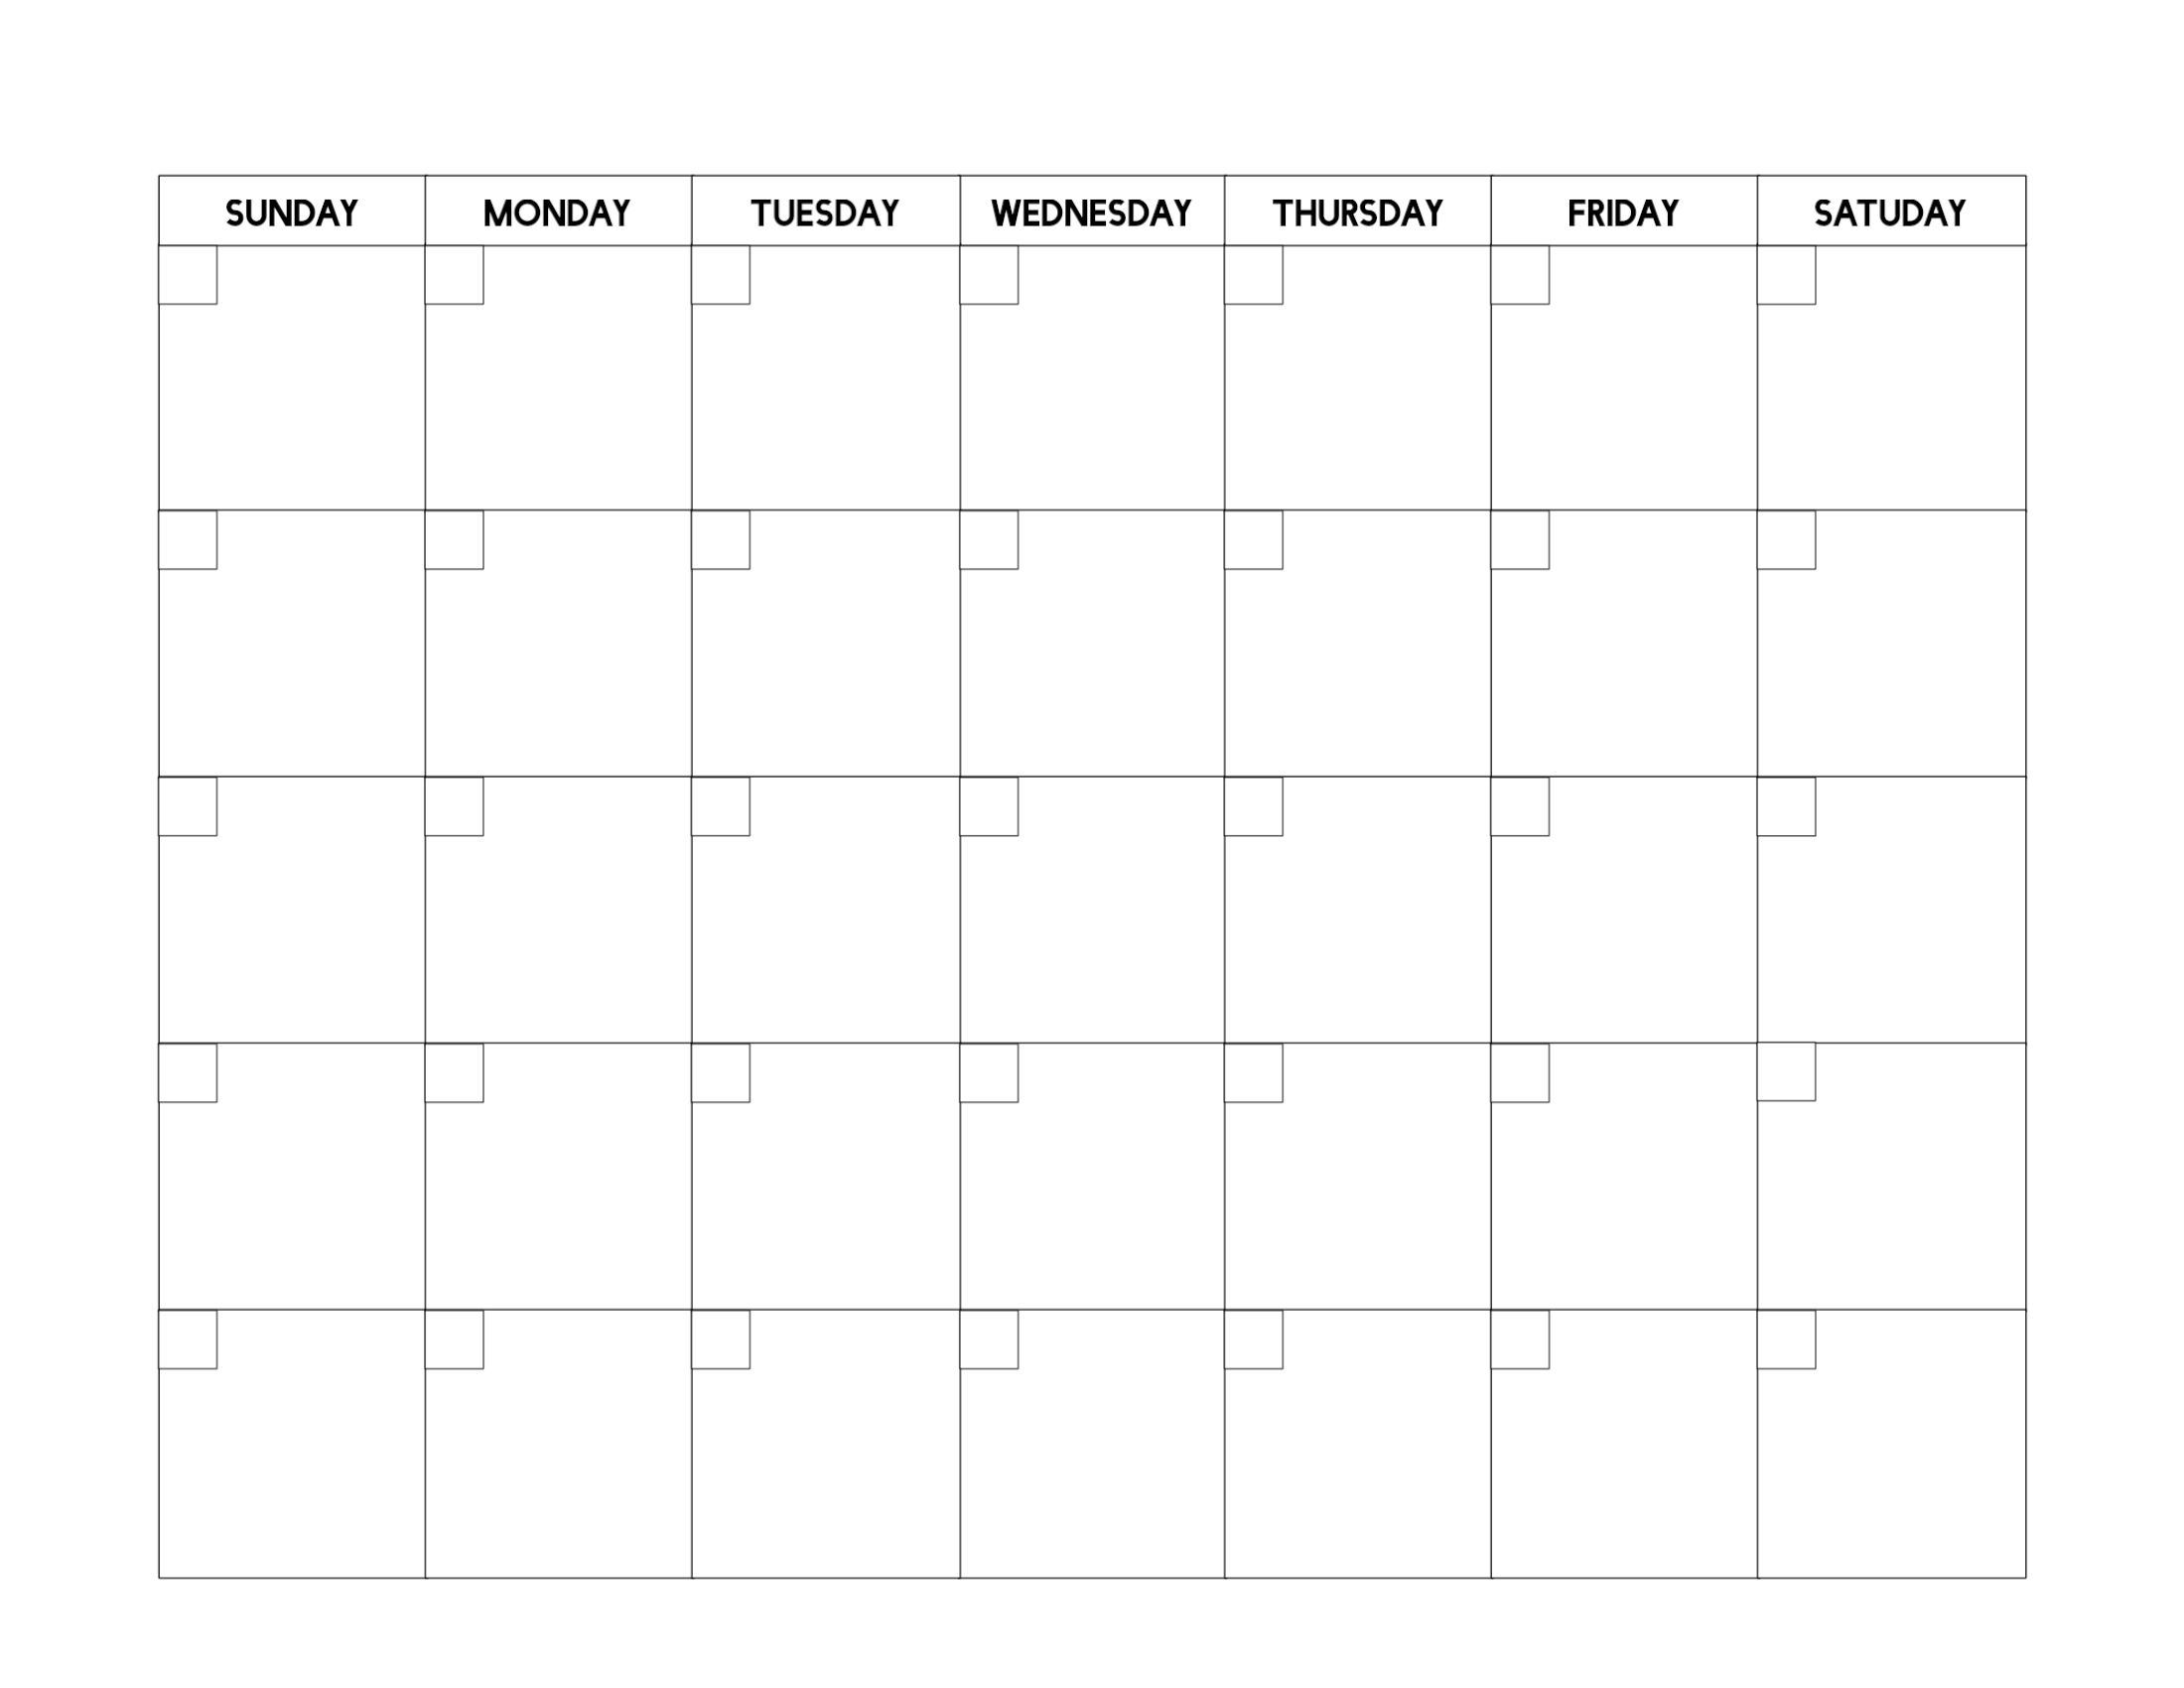 Free Printable Blank Calendar Template - Paper Trail Design within Free Printable Blank Calendars To Fill In